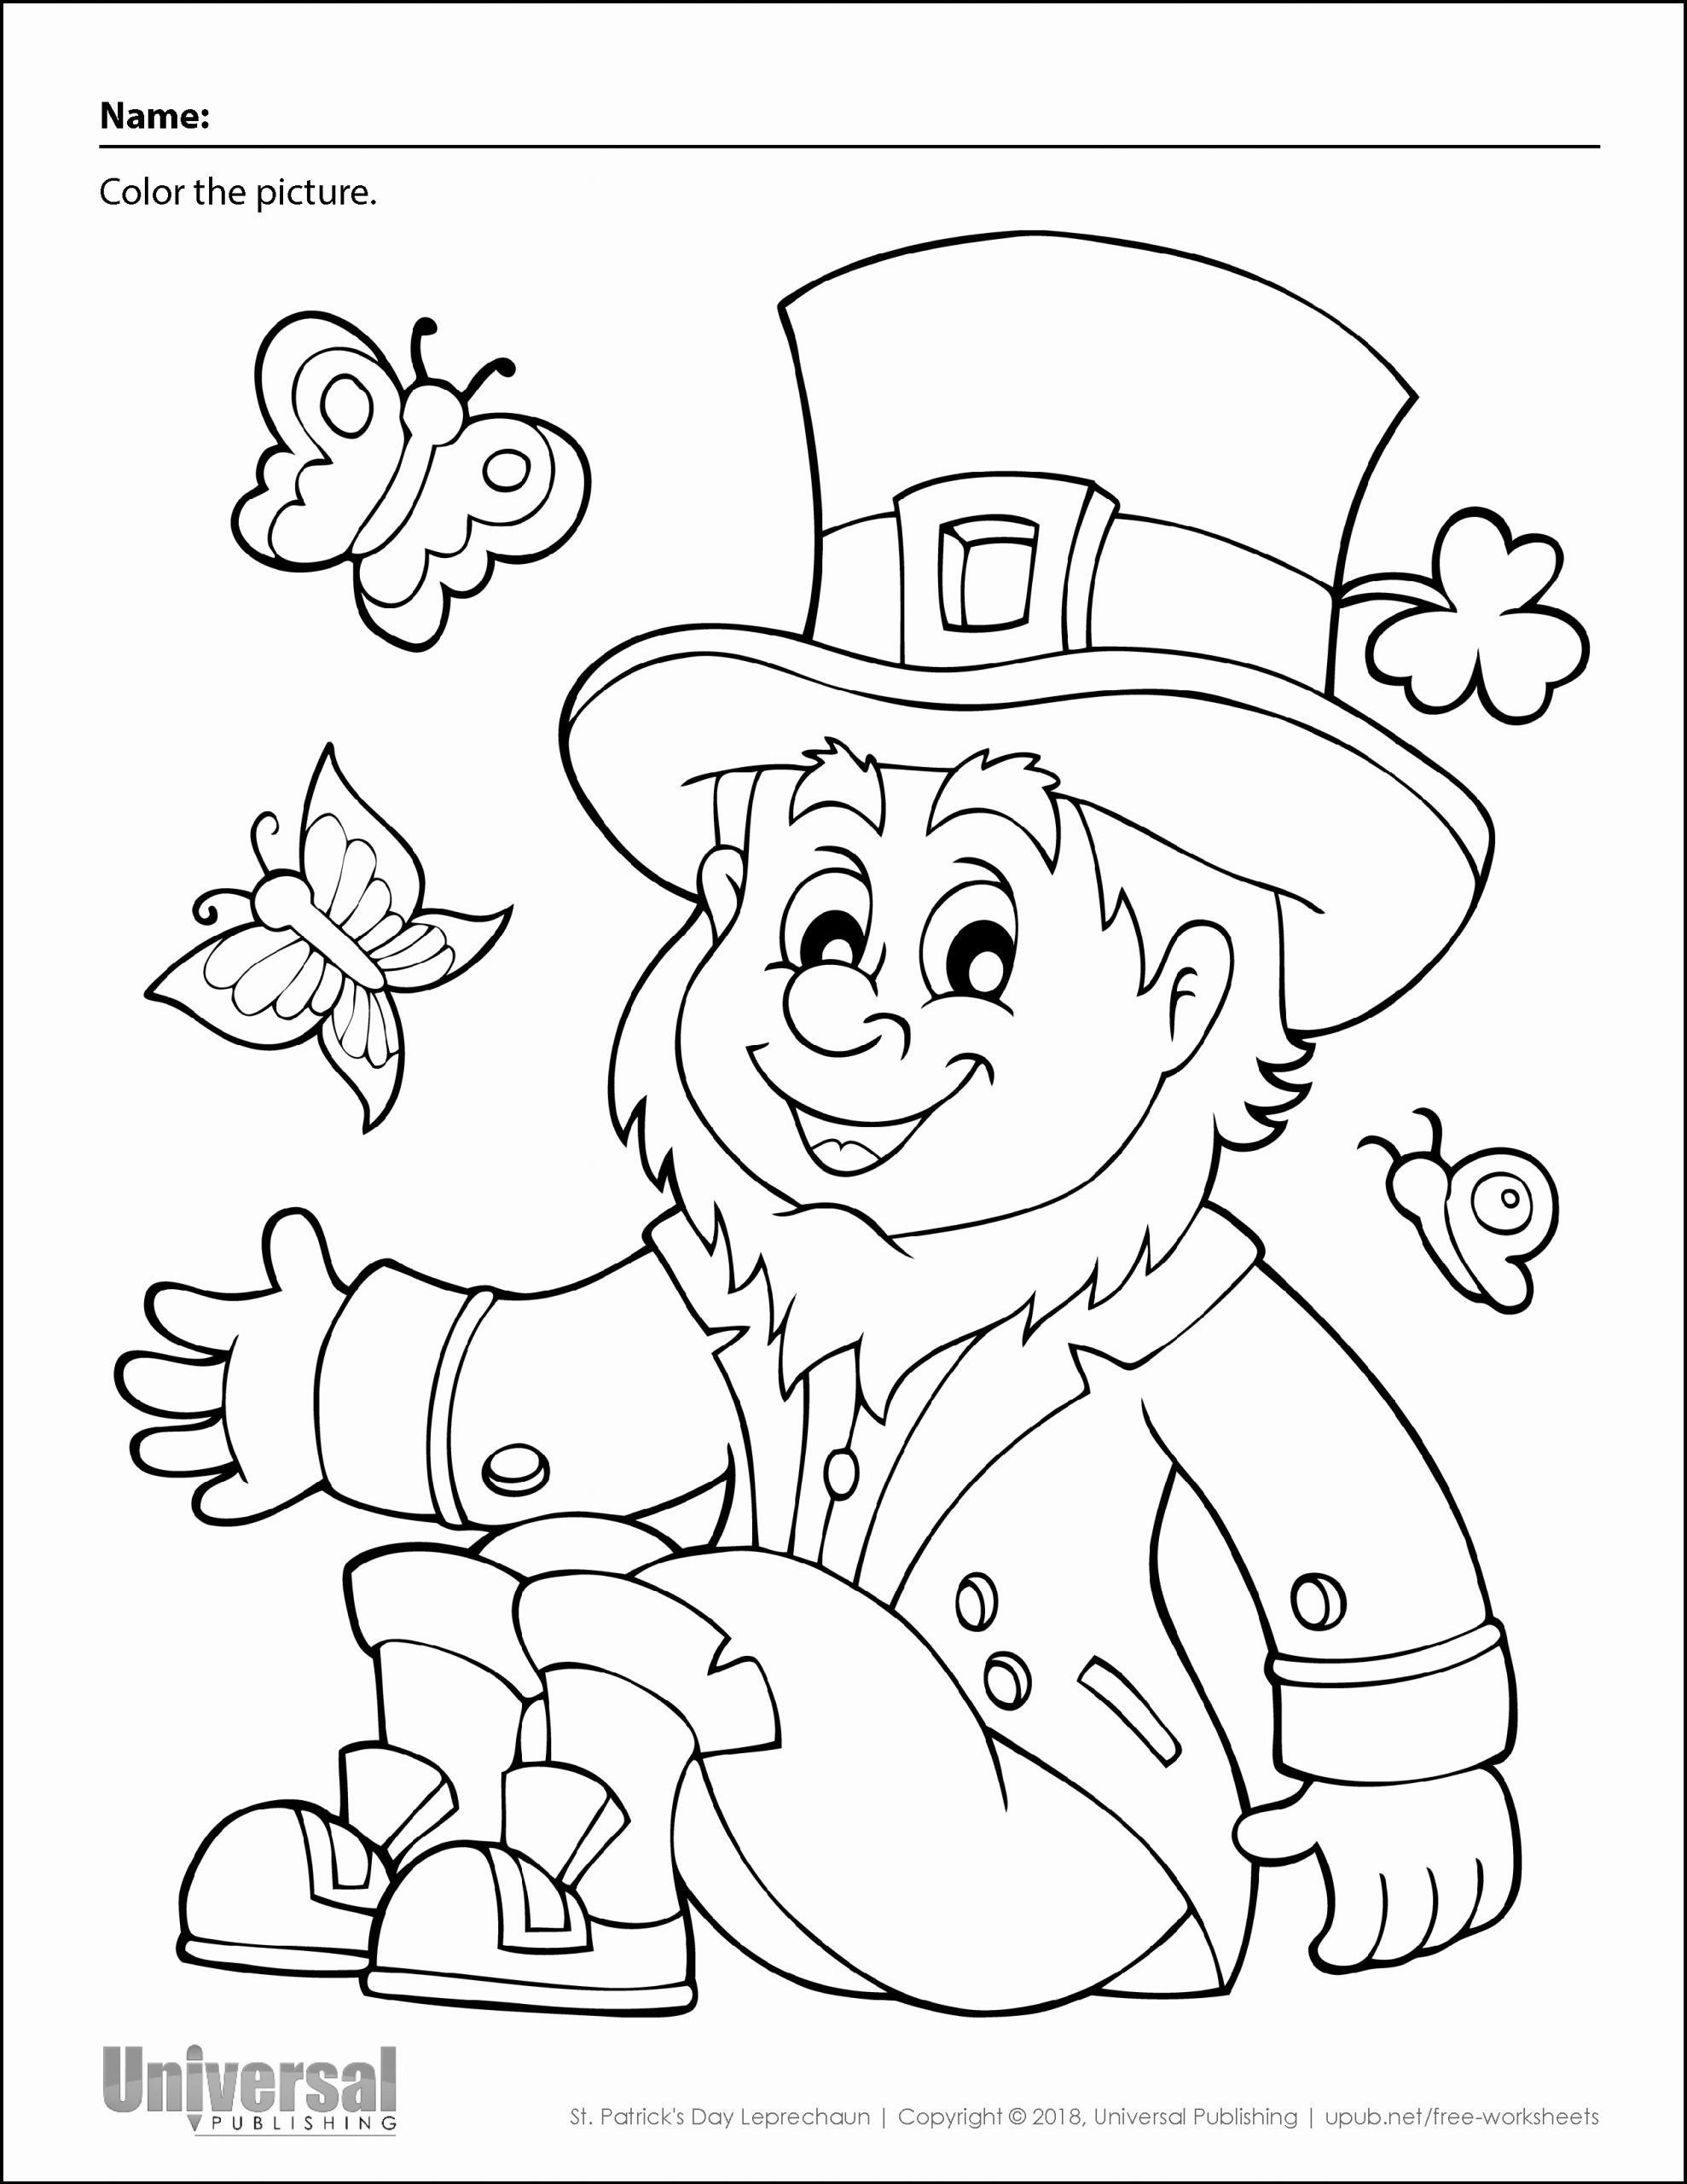 Free St Patricks Day Coloring Pages Best Of Coffee Table St Patricks Day Coloring Pa In 2021 Ninjago Coloring Pages Printable Coloring Pages Mothers Day Coloring Pages